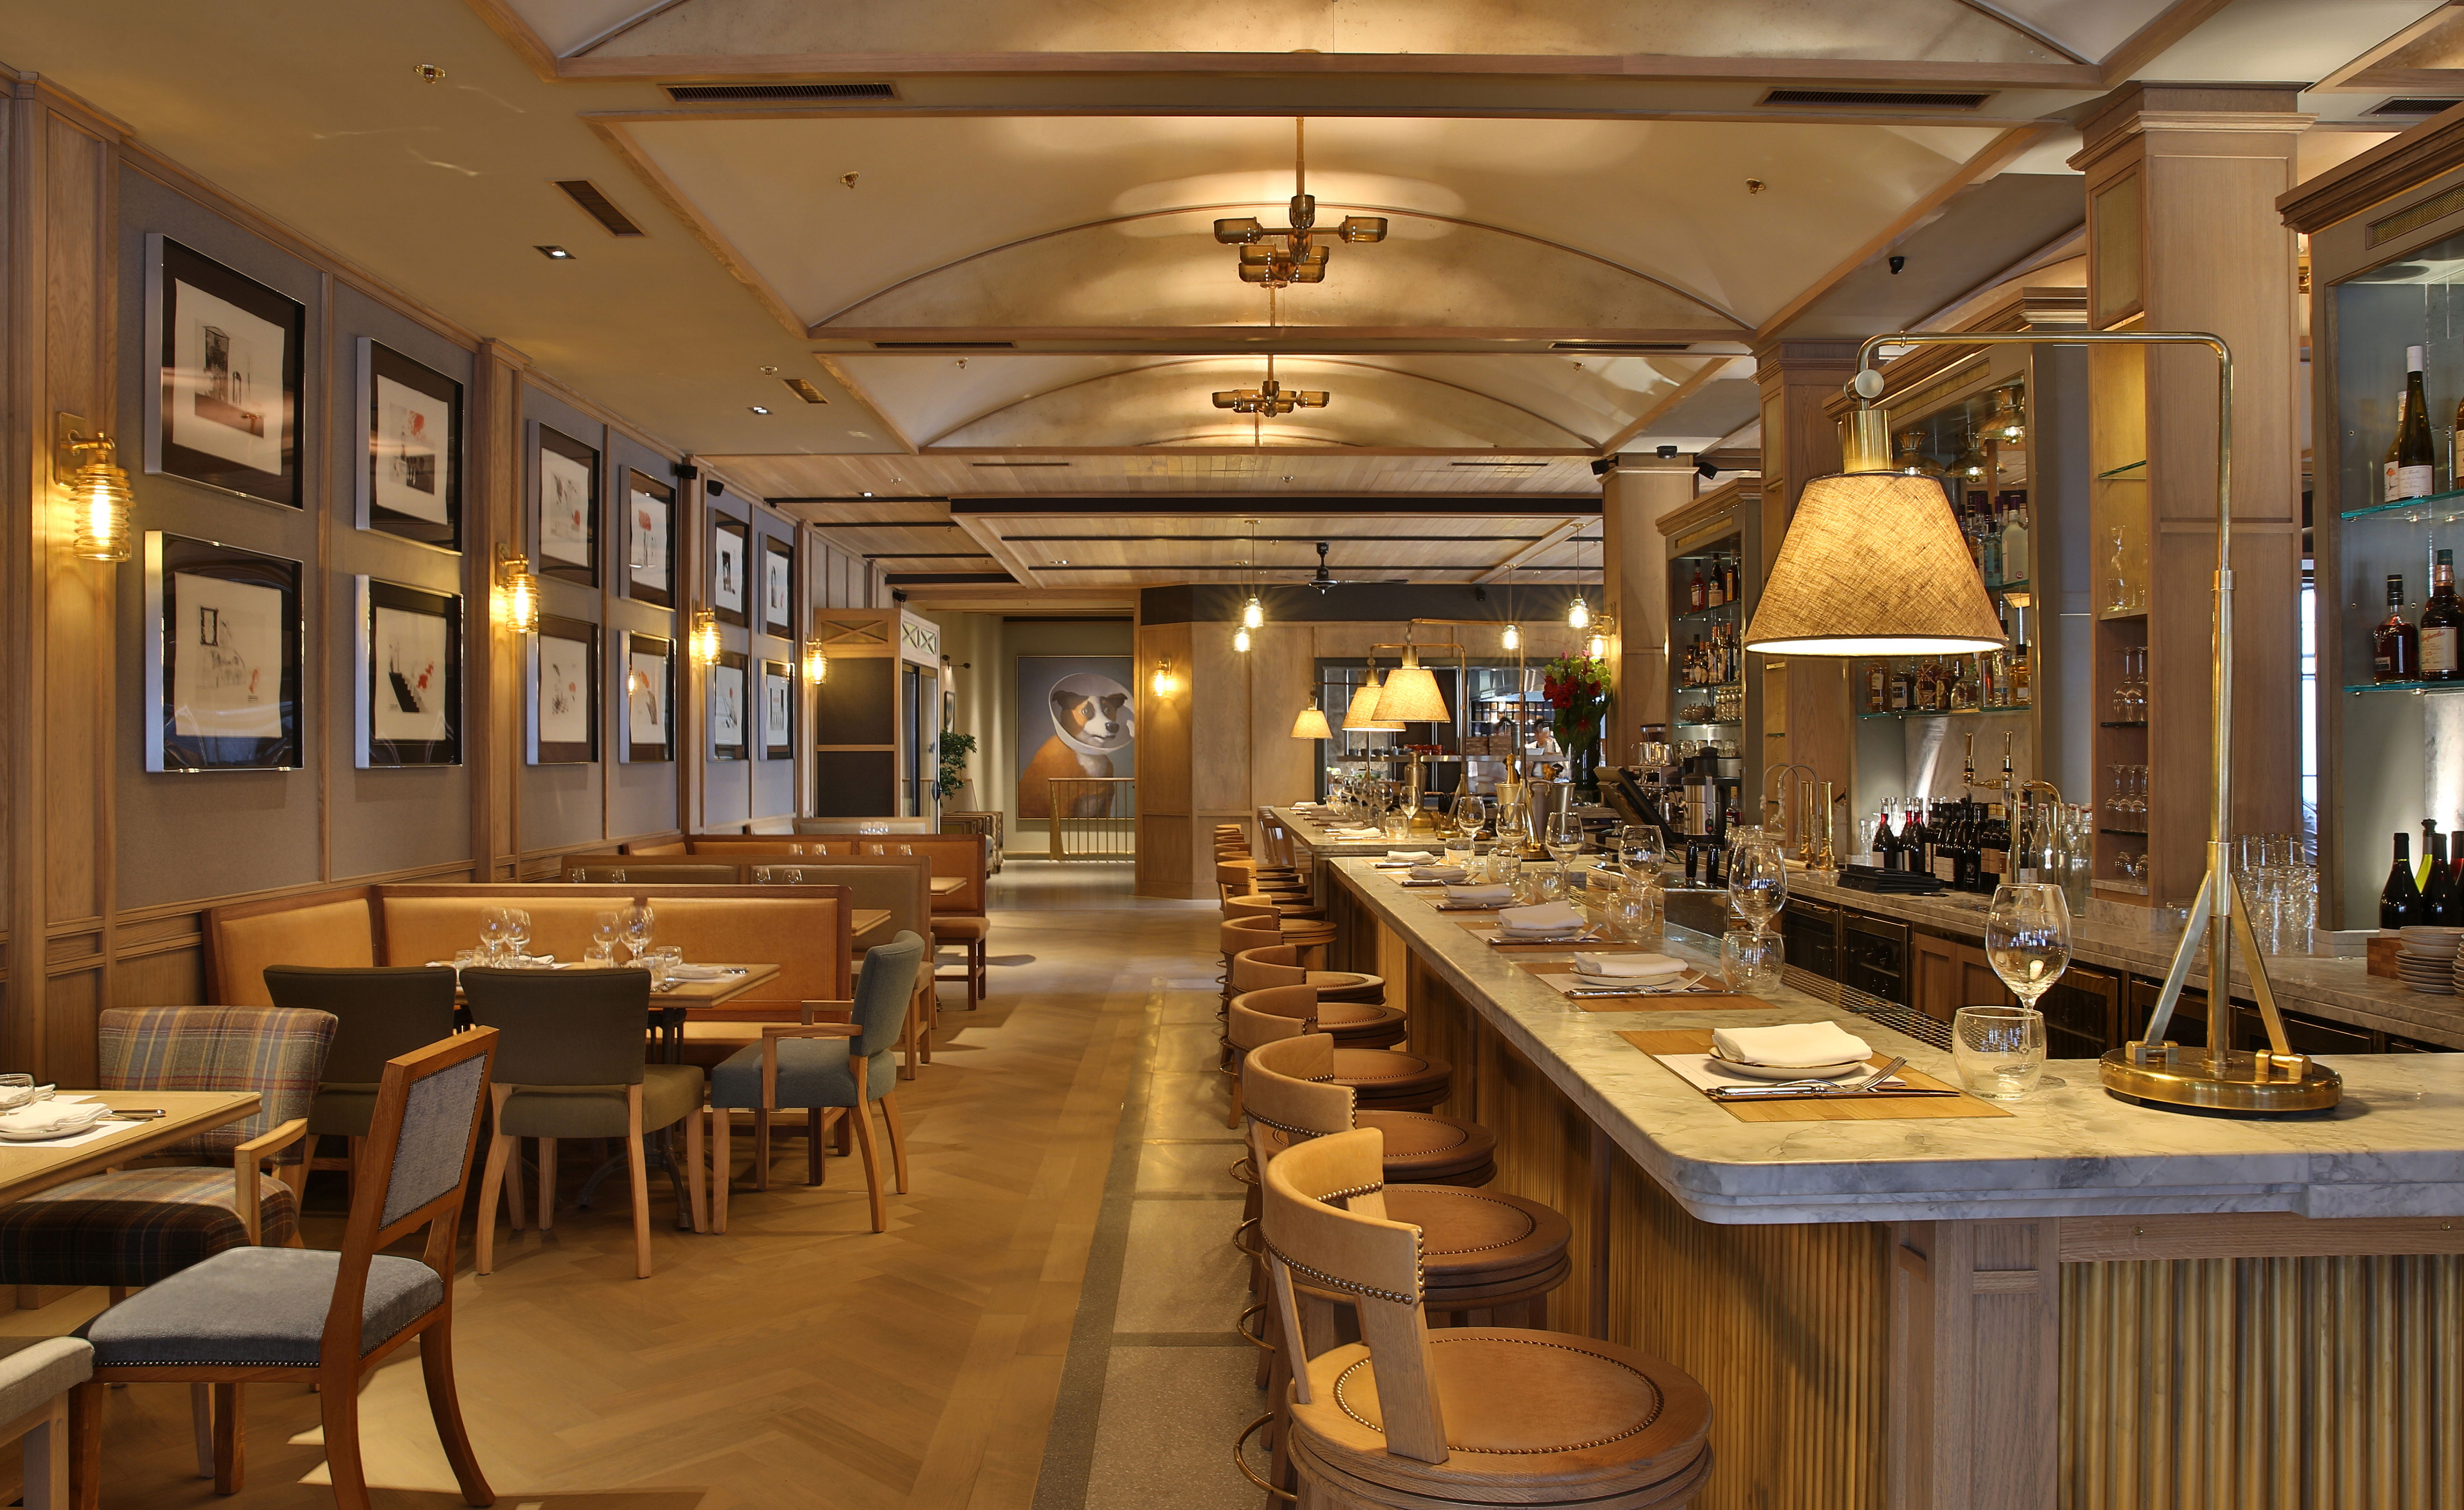 Percy founders restaurant review london uk wallpaper